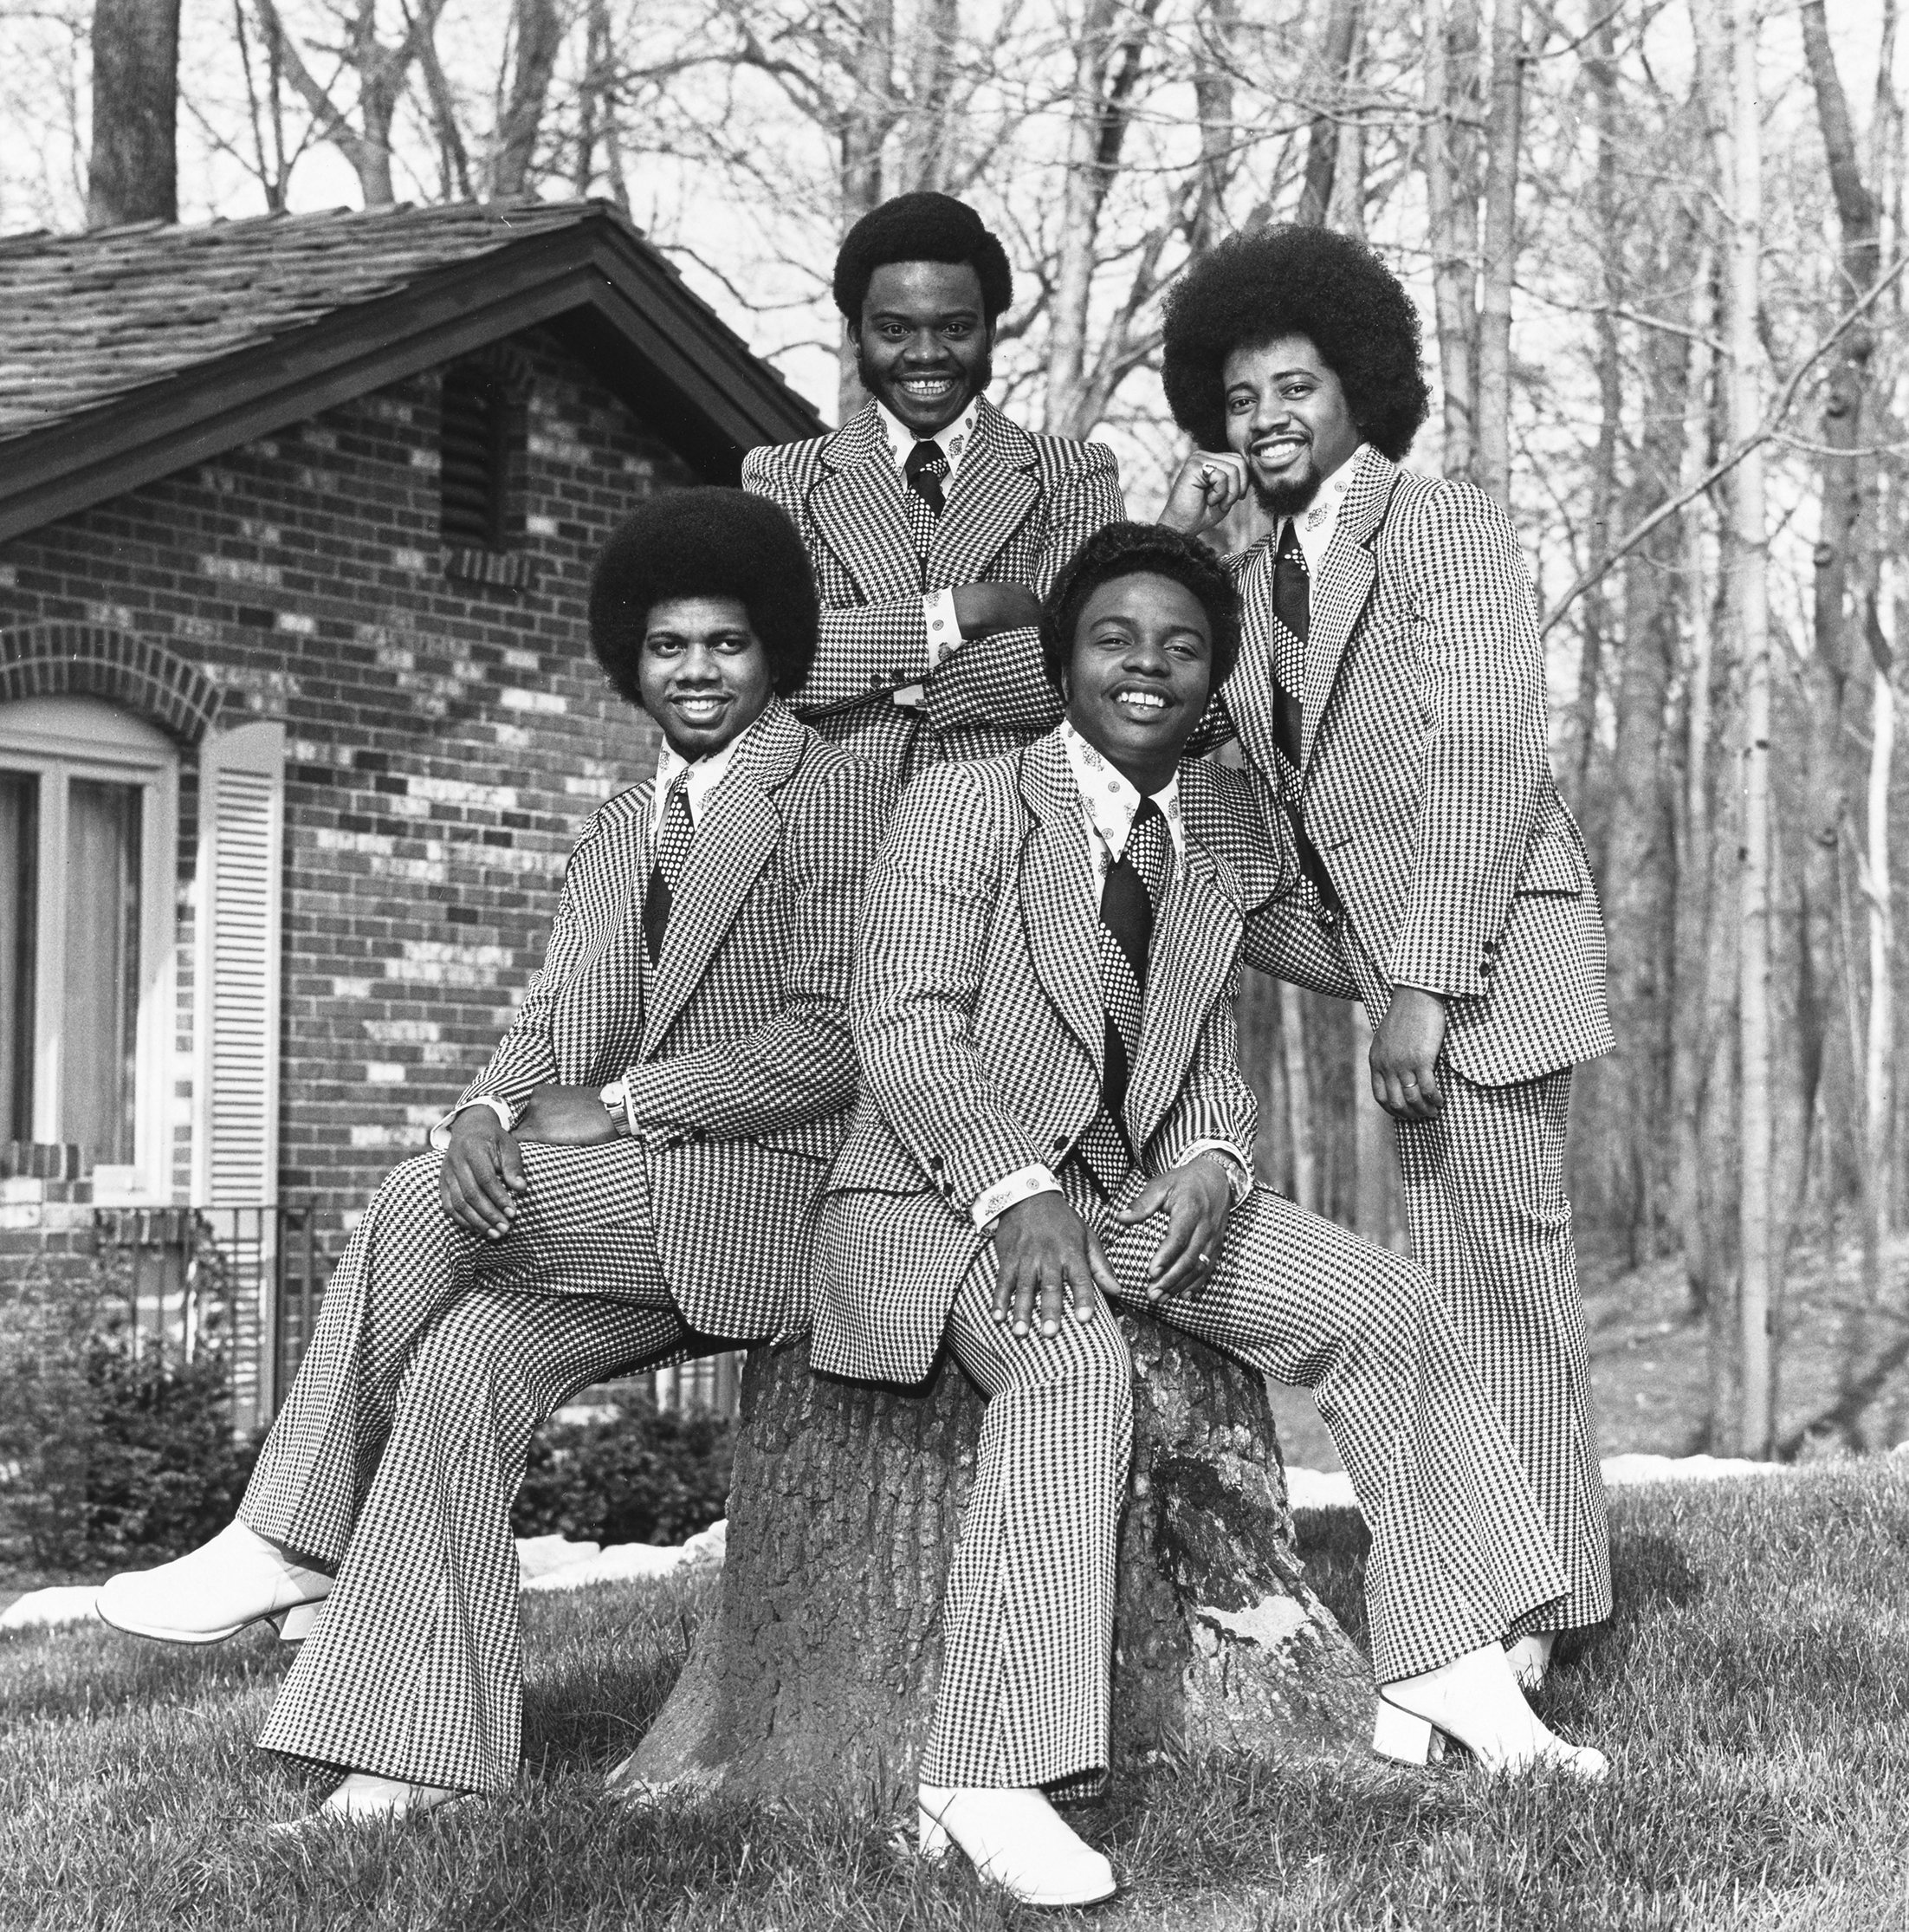 """The Determinations - The Determinations vocal group which consisted of brothers Donald and Jerry Bryant, Harold """"Happy"""" Henderson and Sam Johnson, who was added after he was """"discovered singing in the shower at Middletown High School."""" In time the group became """"one of the top touring acts in America"""" and performed with luminaries such as the Temptations. At their last concert in 1979 in Louisville, Kentucky, they appeared with Little Anthony and the Imperials. """"Girl Girl Girl,"""" their first record, was released in 1969."""